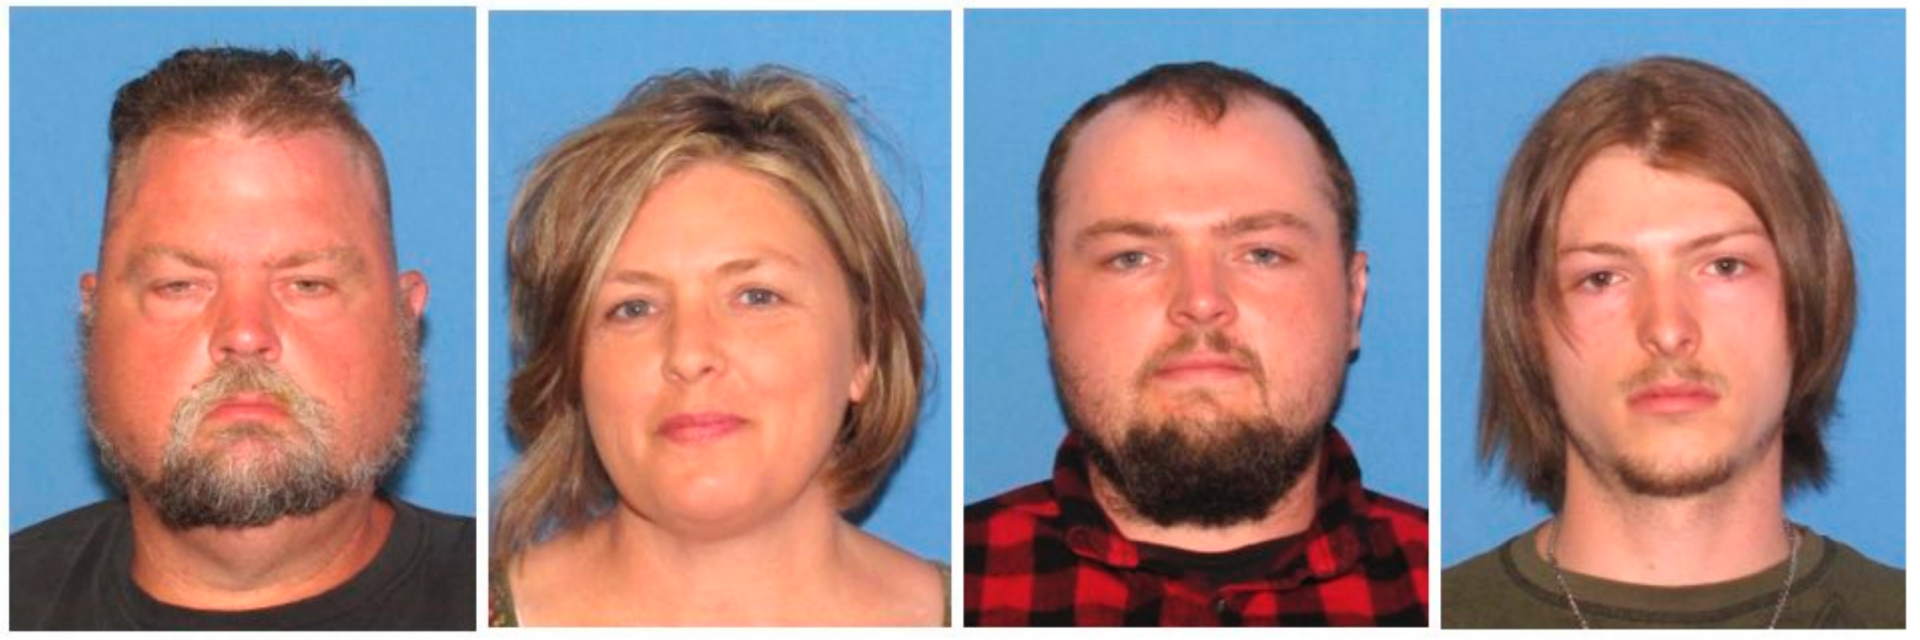 Authorities: Custody dispute played role in slaying of 8